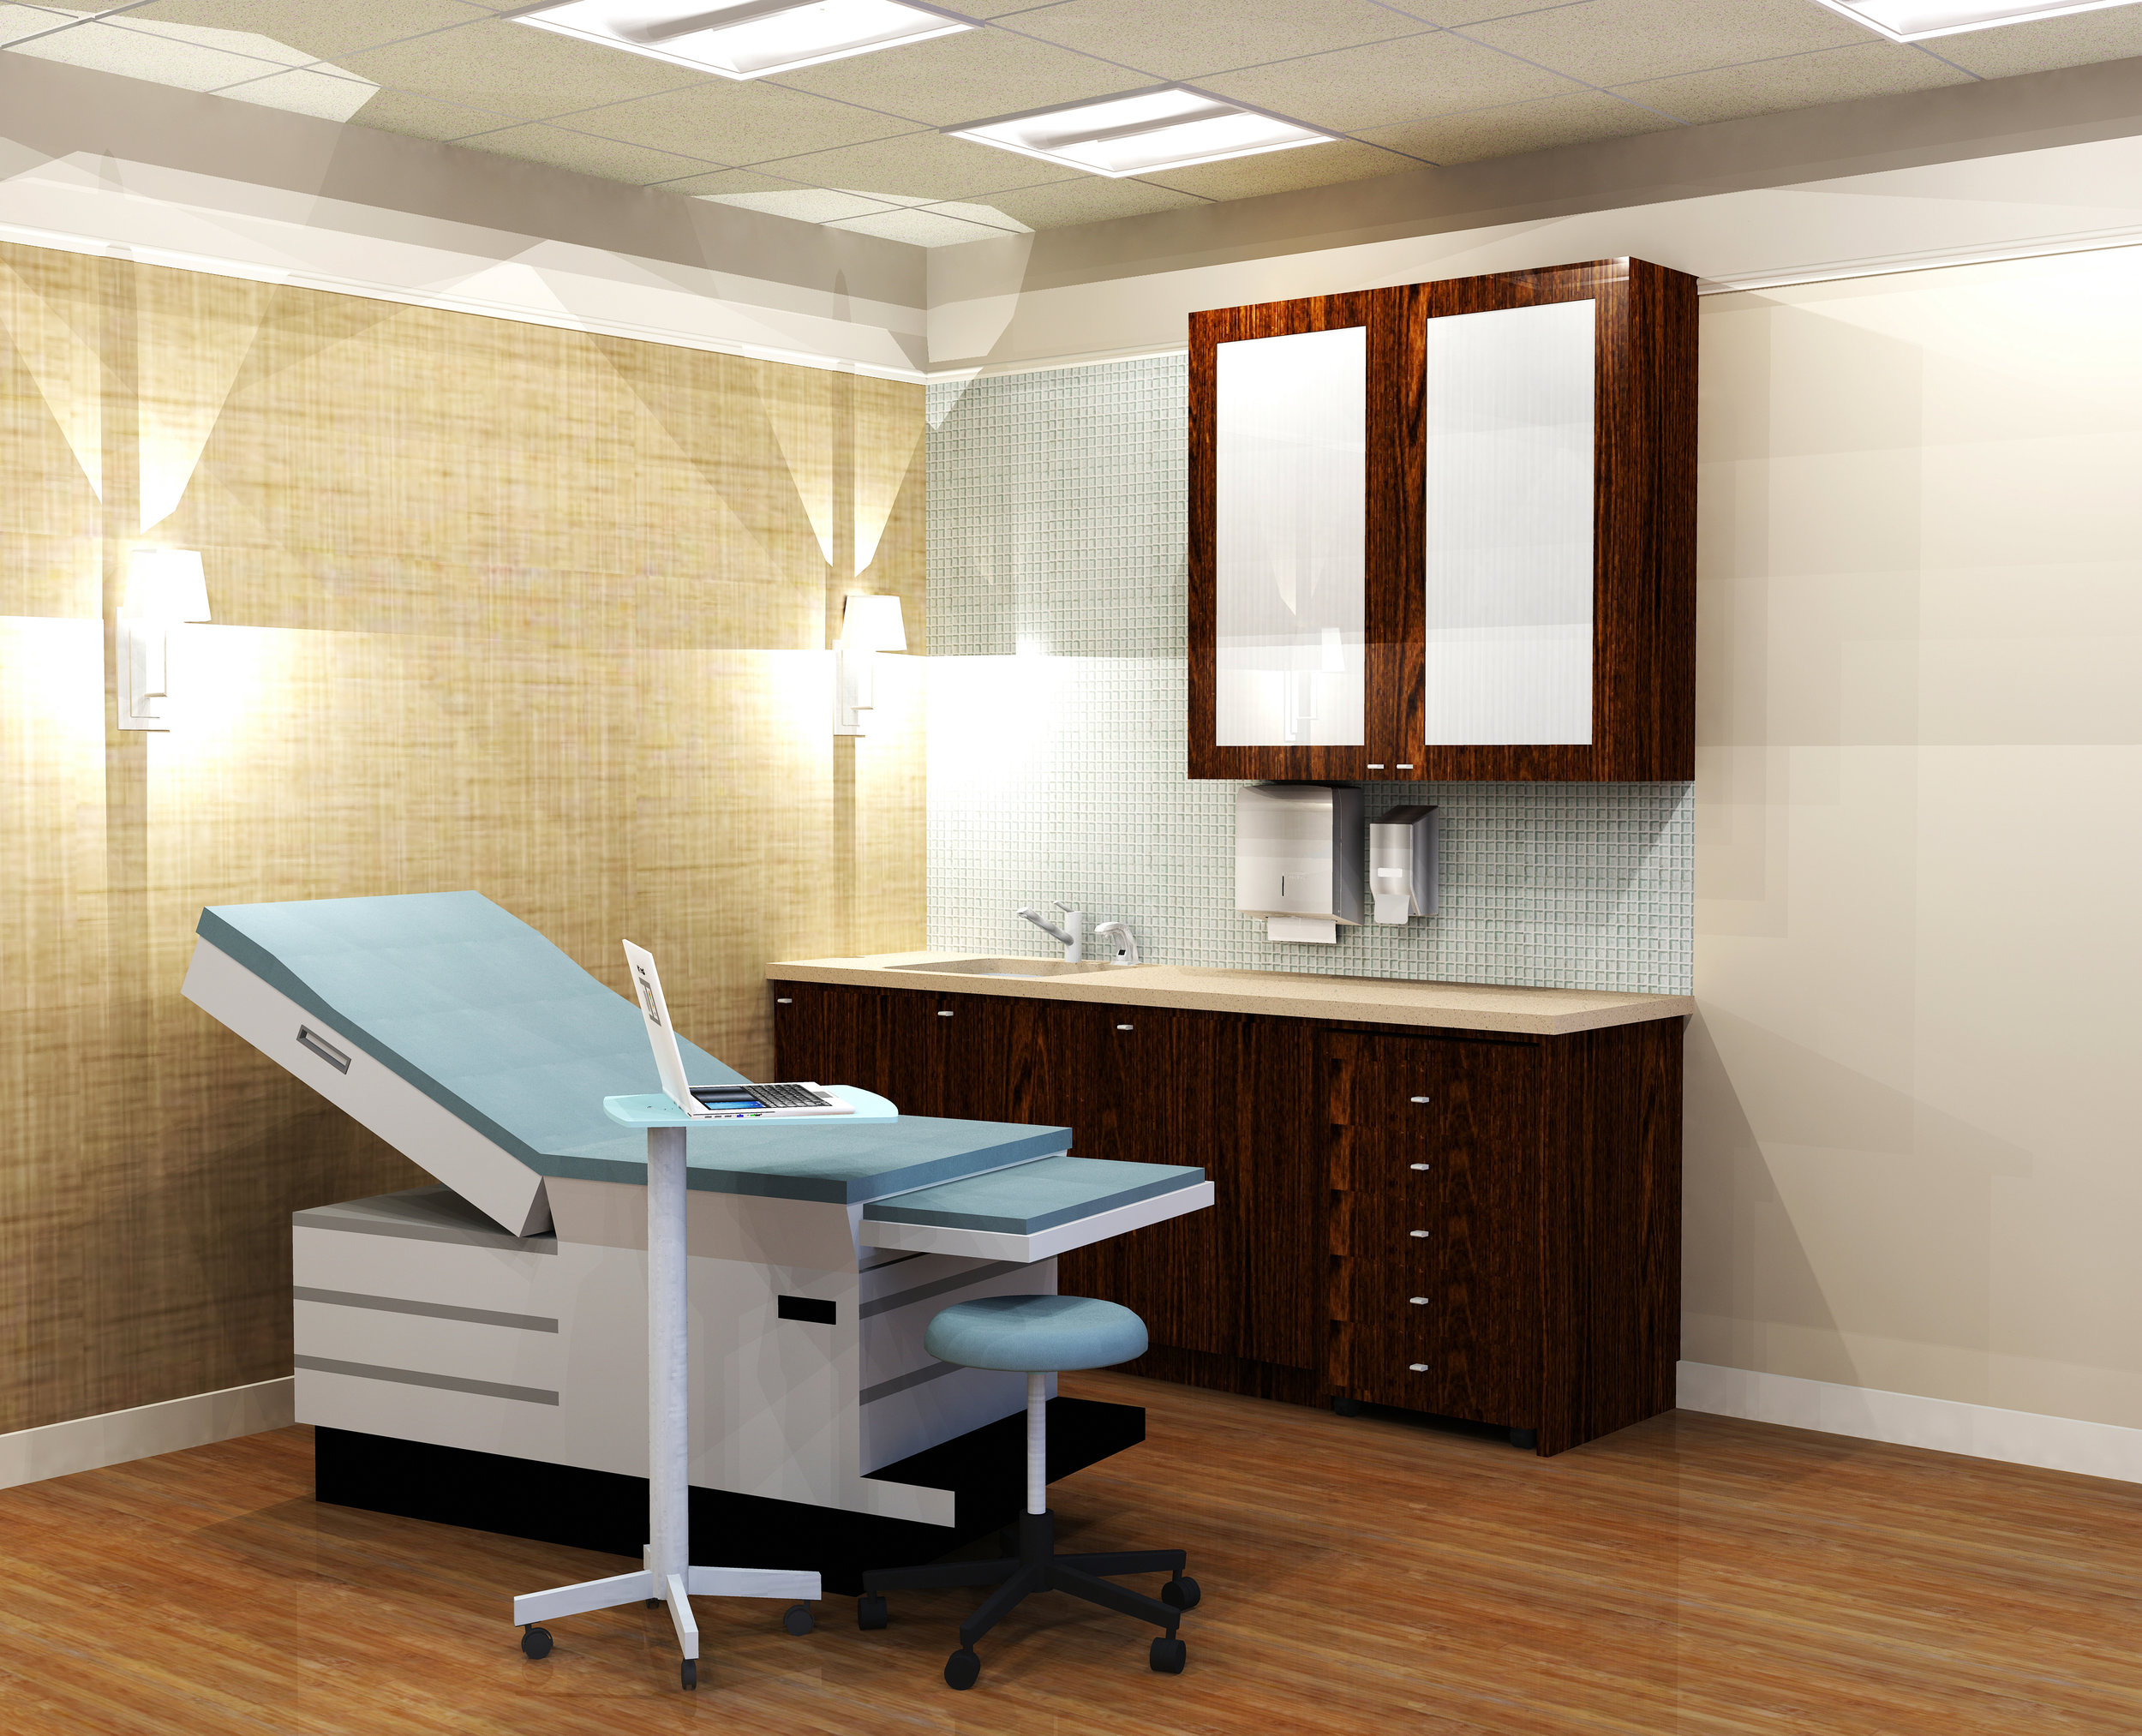 C. Exam room w sconce.jpg